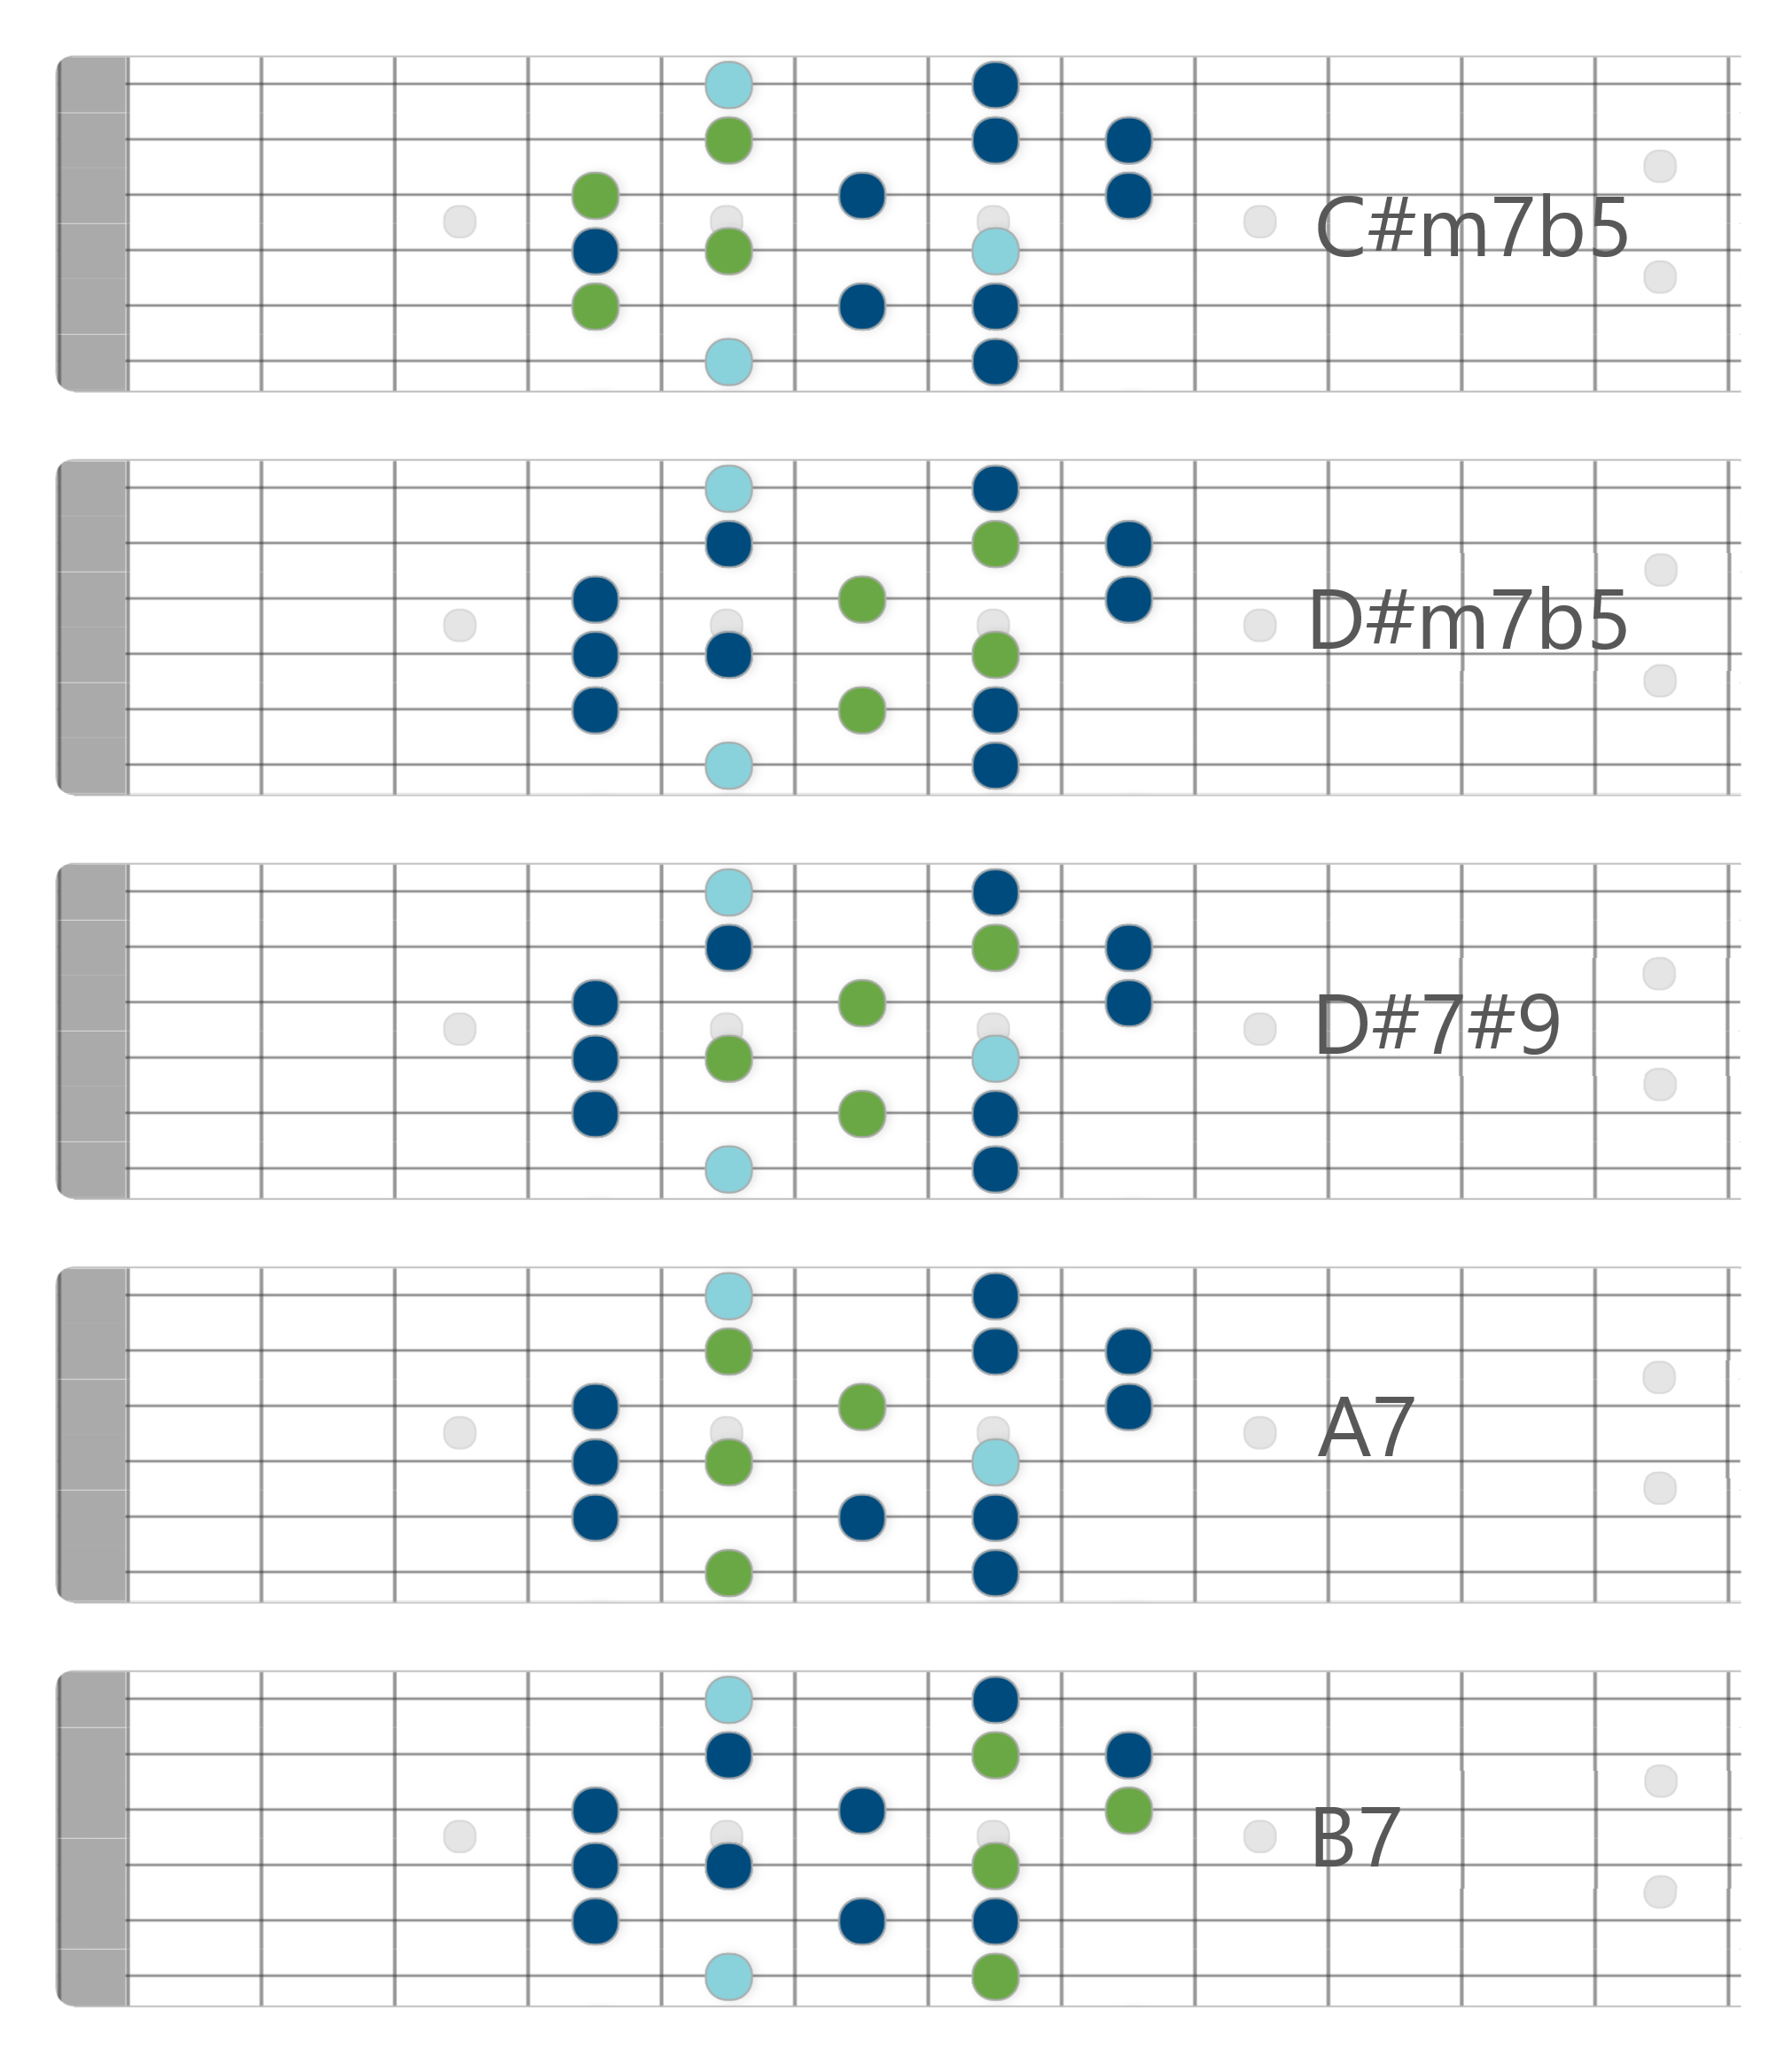 lydian b7 scale chords